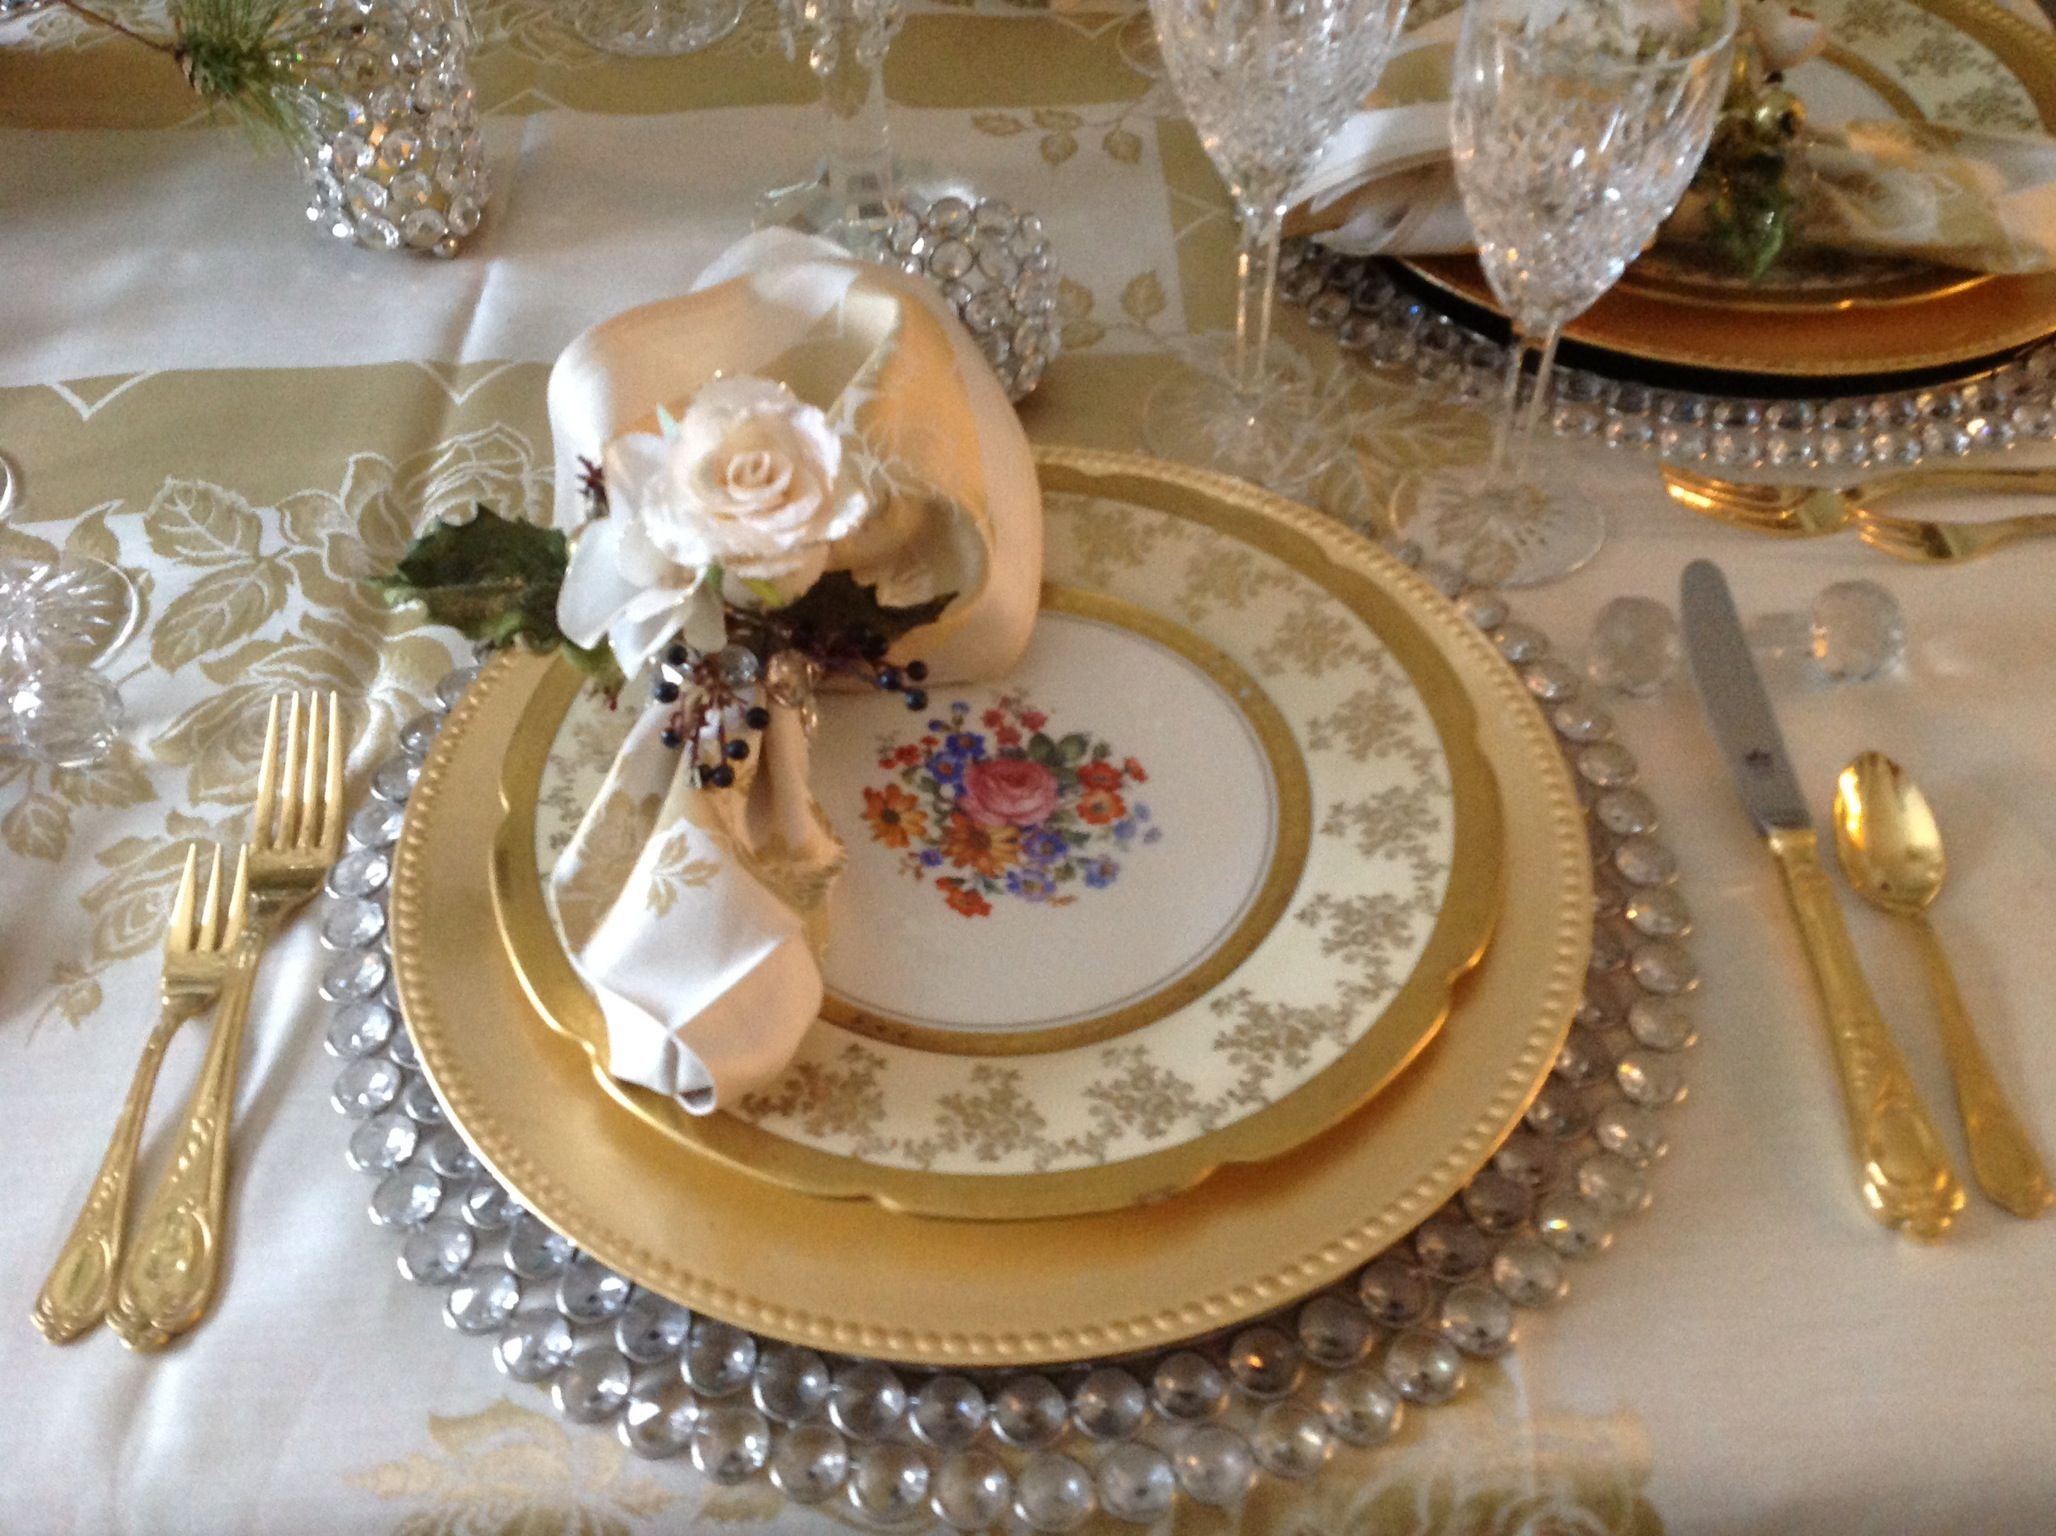 Elegant Tableware For Dining Rooms With Style: Dining Room- Place Setting, Crystal And Gold Chargers With